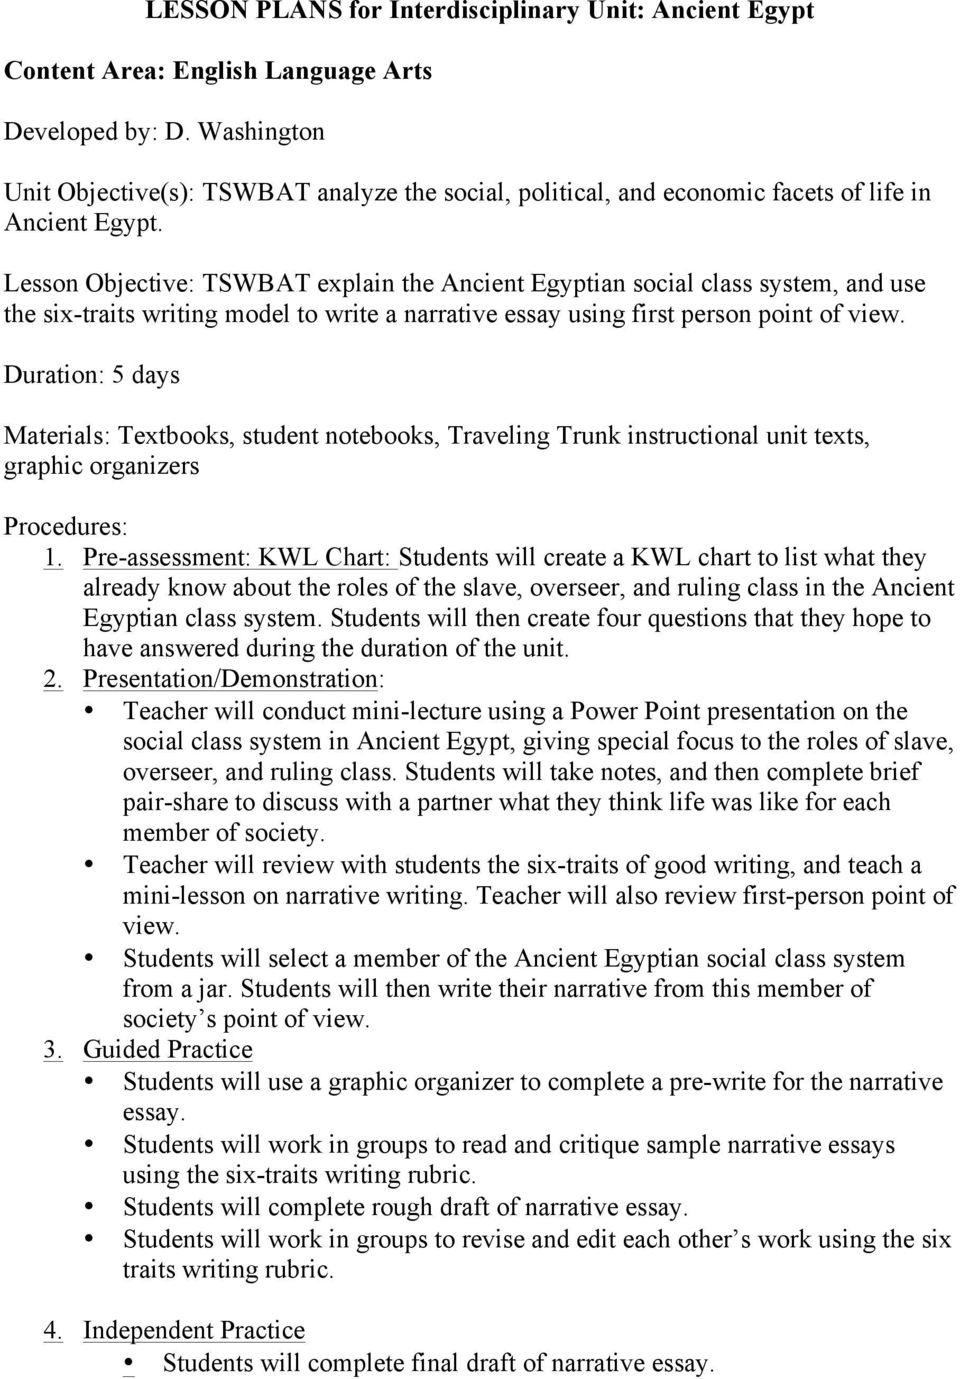 Lesson Plans For Interdisciplinary Unit Ancient Egypt  Pdf Lesson Objective Tswbat Explain The Ancient Egyptian Social Class System  And Use The Six